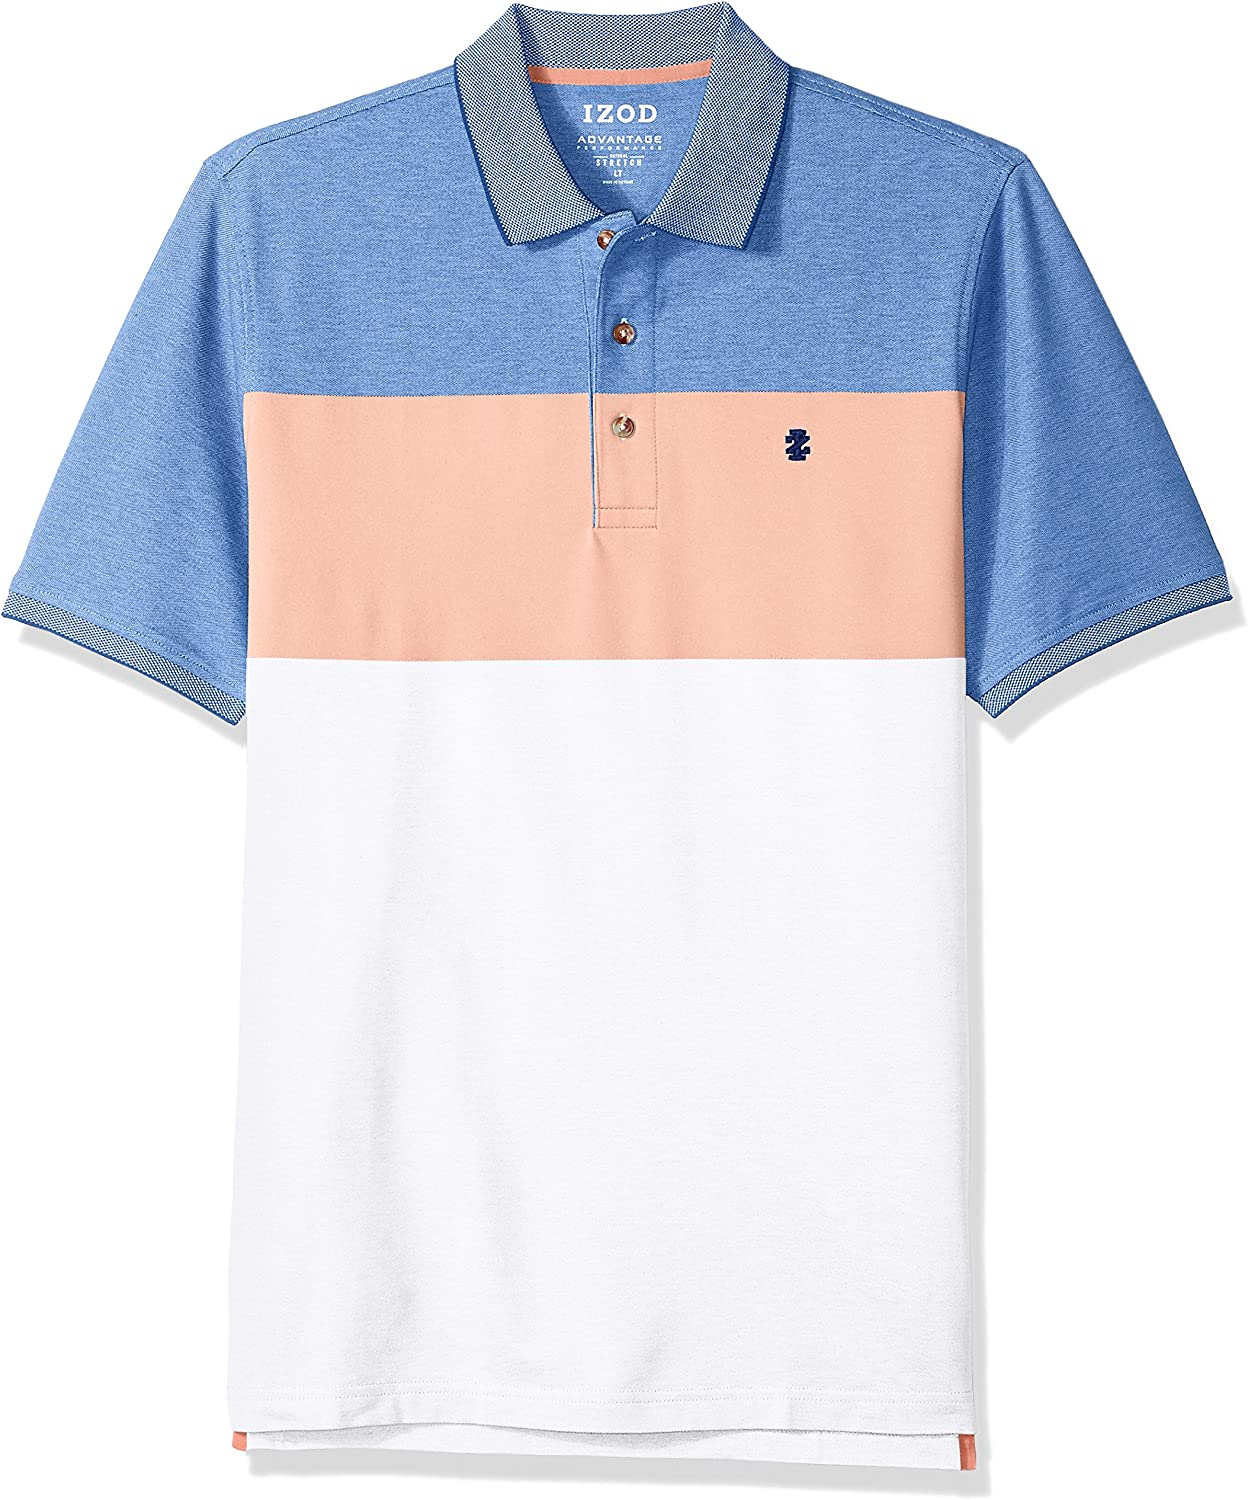 IZOD Men's Big and Tall Advantage Performance Short Sleeve Colorblock Polo (Discontinued)